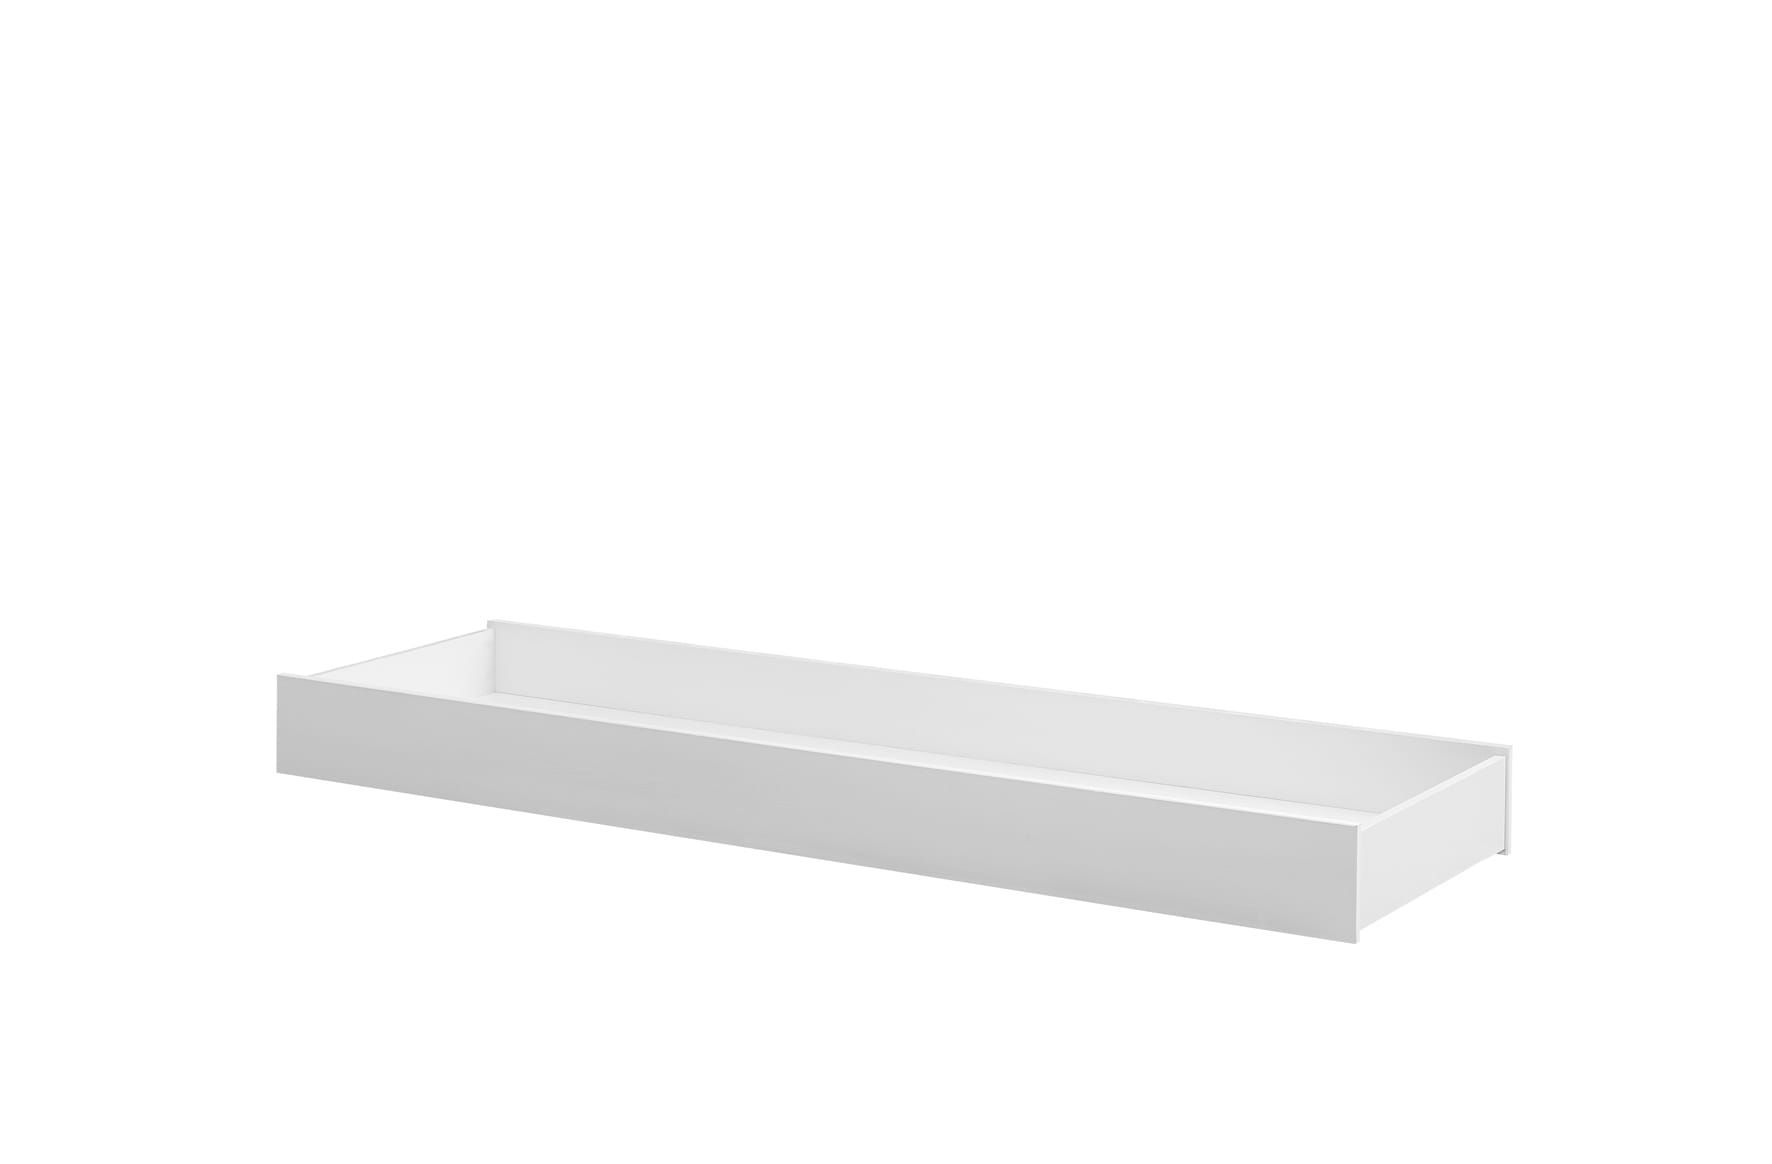 blanco_drawer120-140x200.jpg